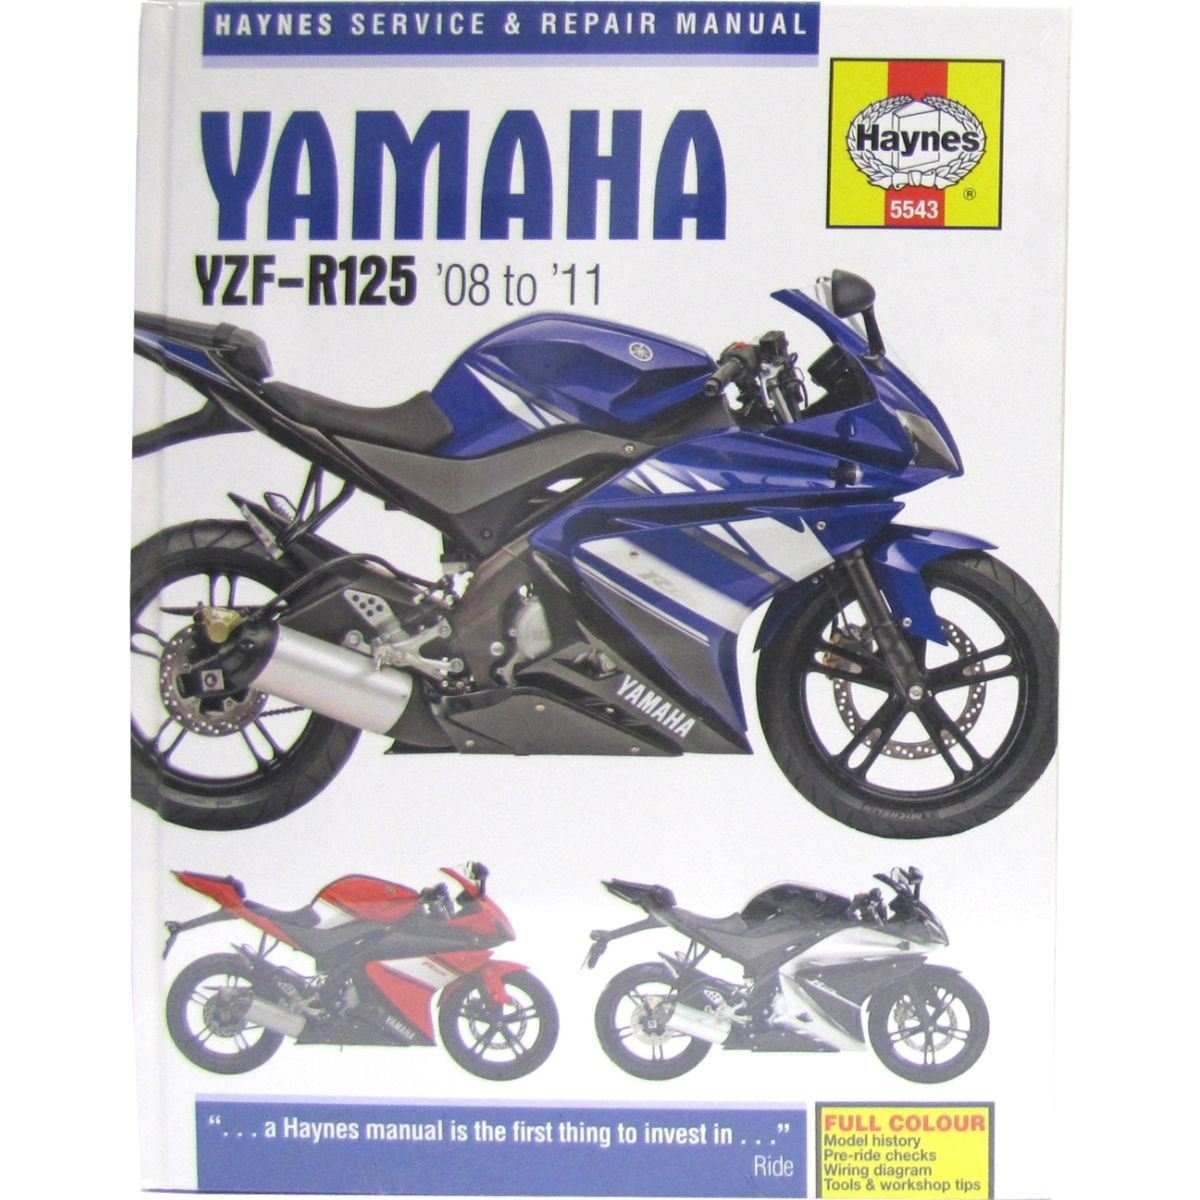 workshop manual yamaha yzf r125 08 11 workshop manual yamaha yzf r125 08 11